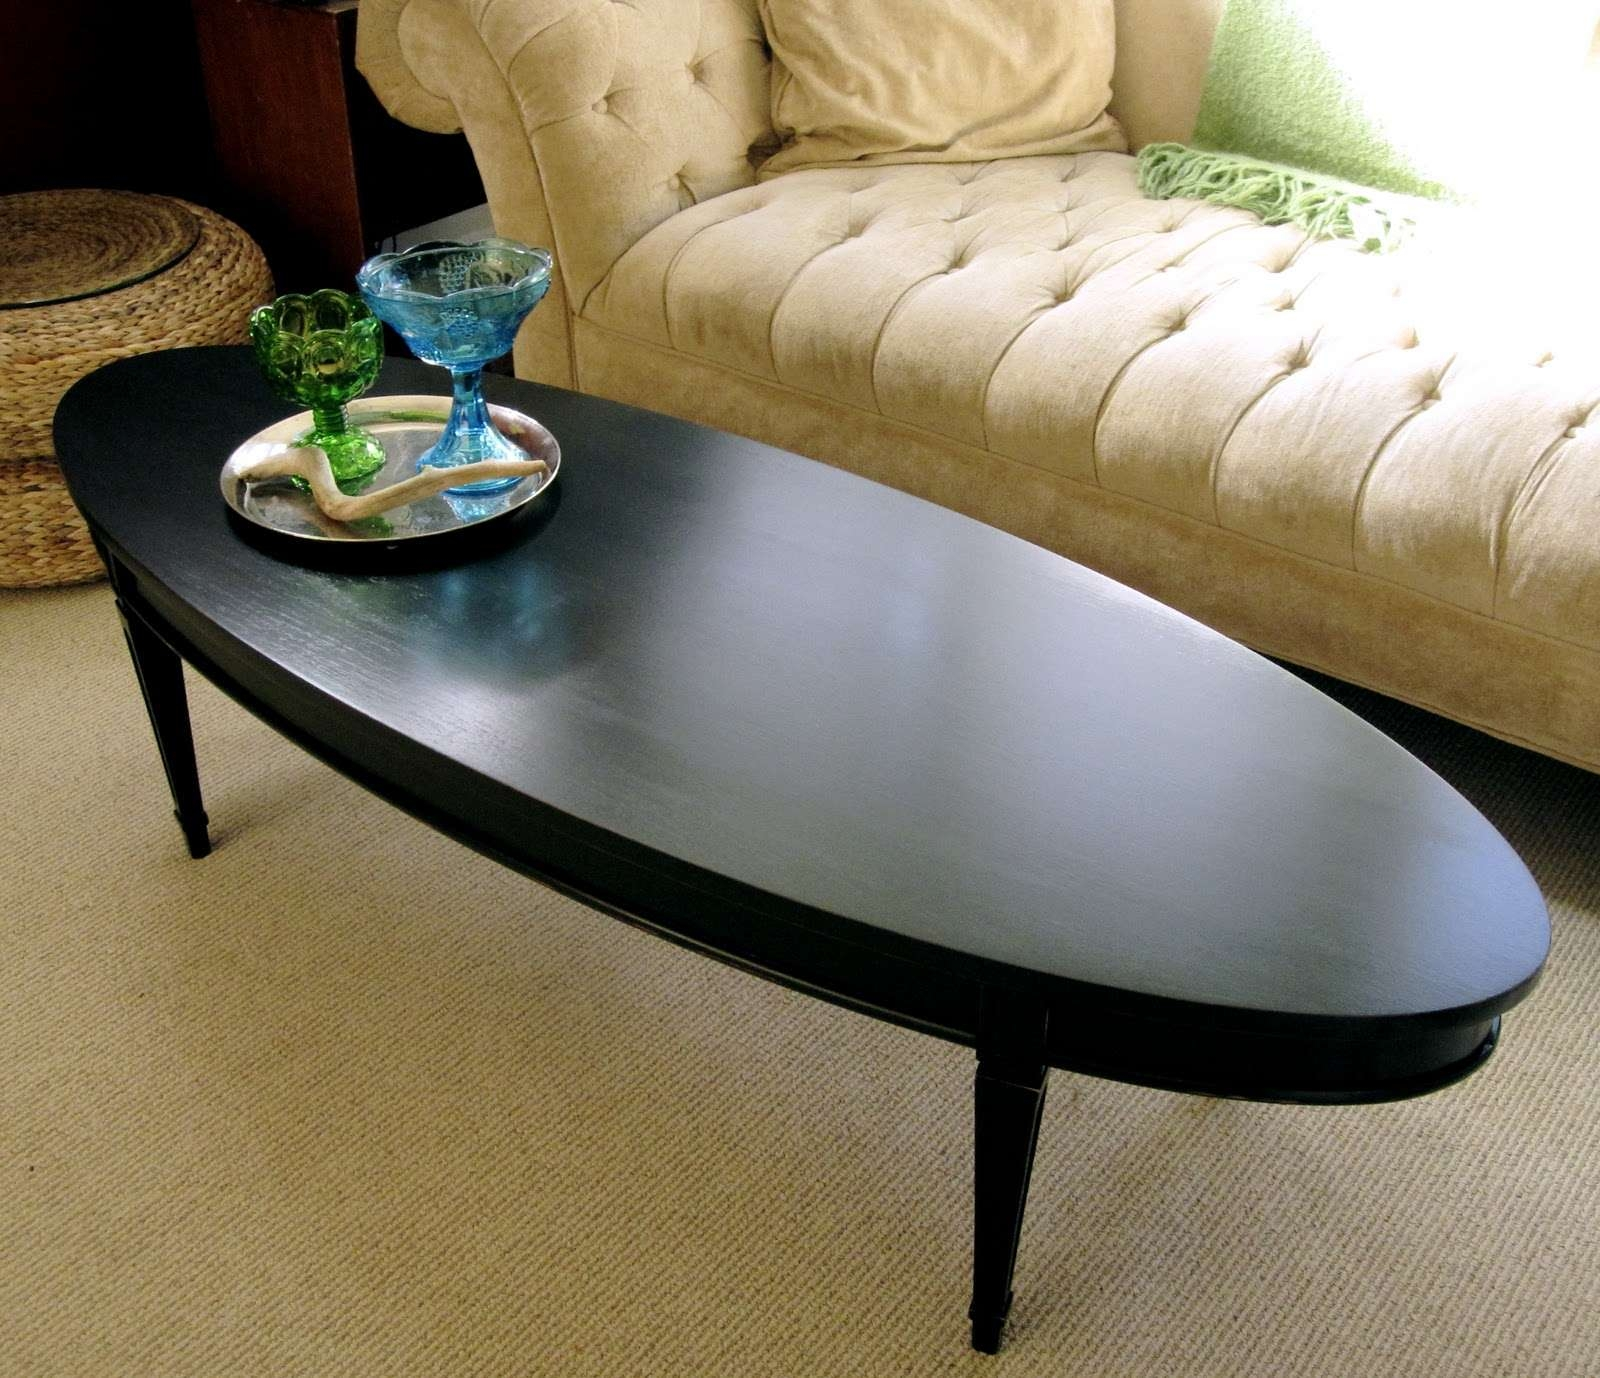 Sweet Tree Furniture: Black Oval Coffee Table Intended For Most Recently Released Black Oval Coffee Tables (View 3 of 20)